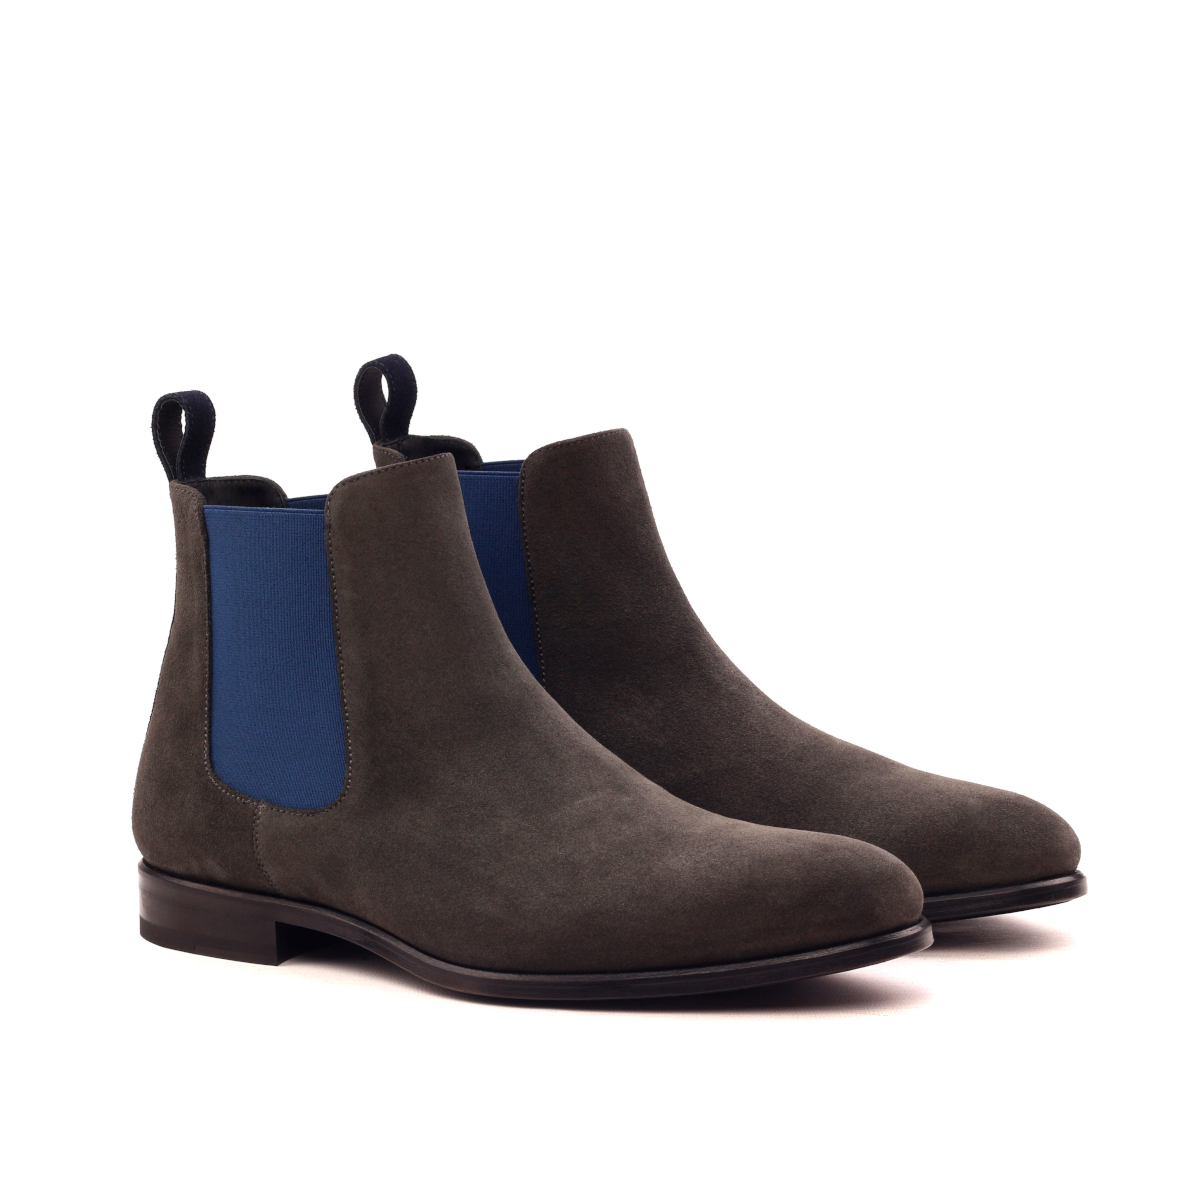 Stone grey lux suede Chelsea boot